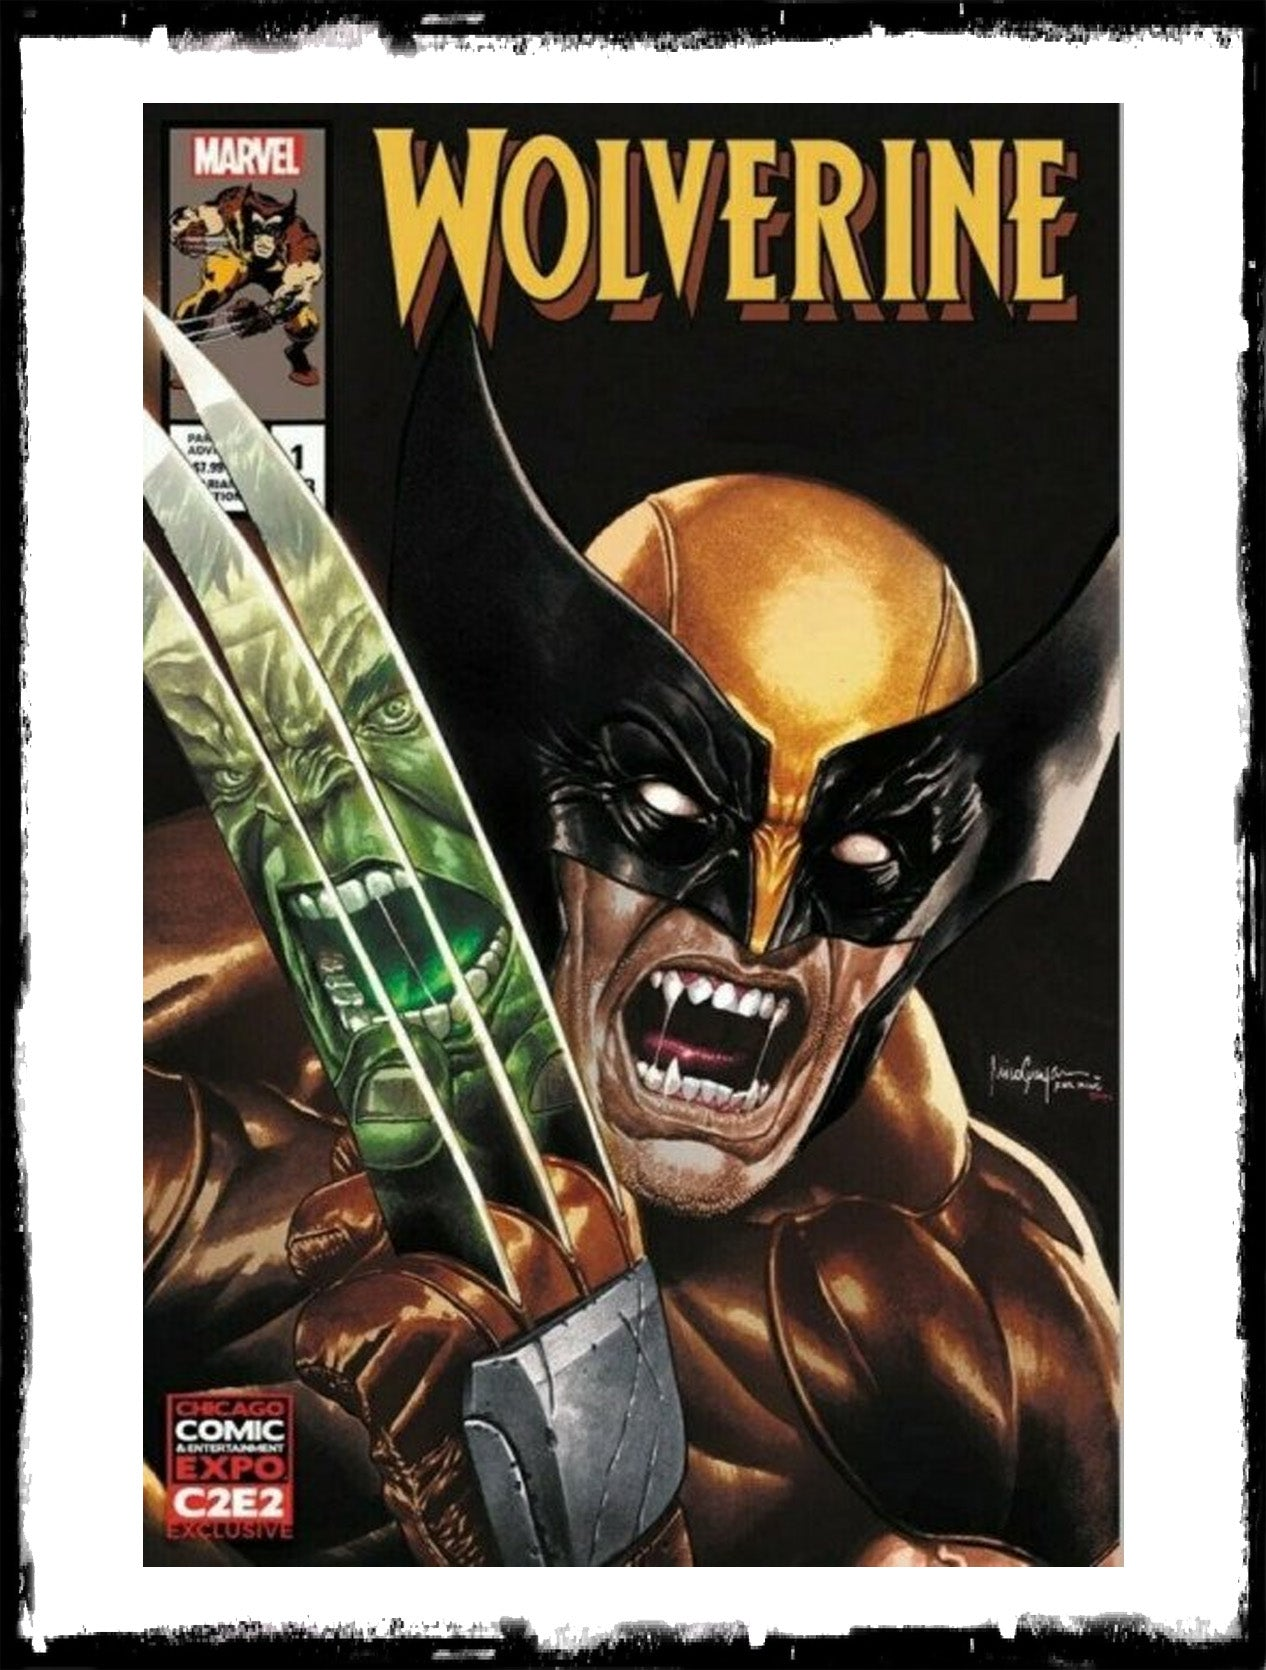 WOLVERINE - #1 C2E2 MICO SUAYAN EXCLUSIVE (2020 - VF+/NM)